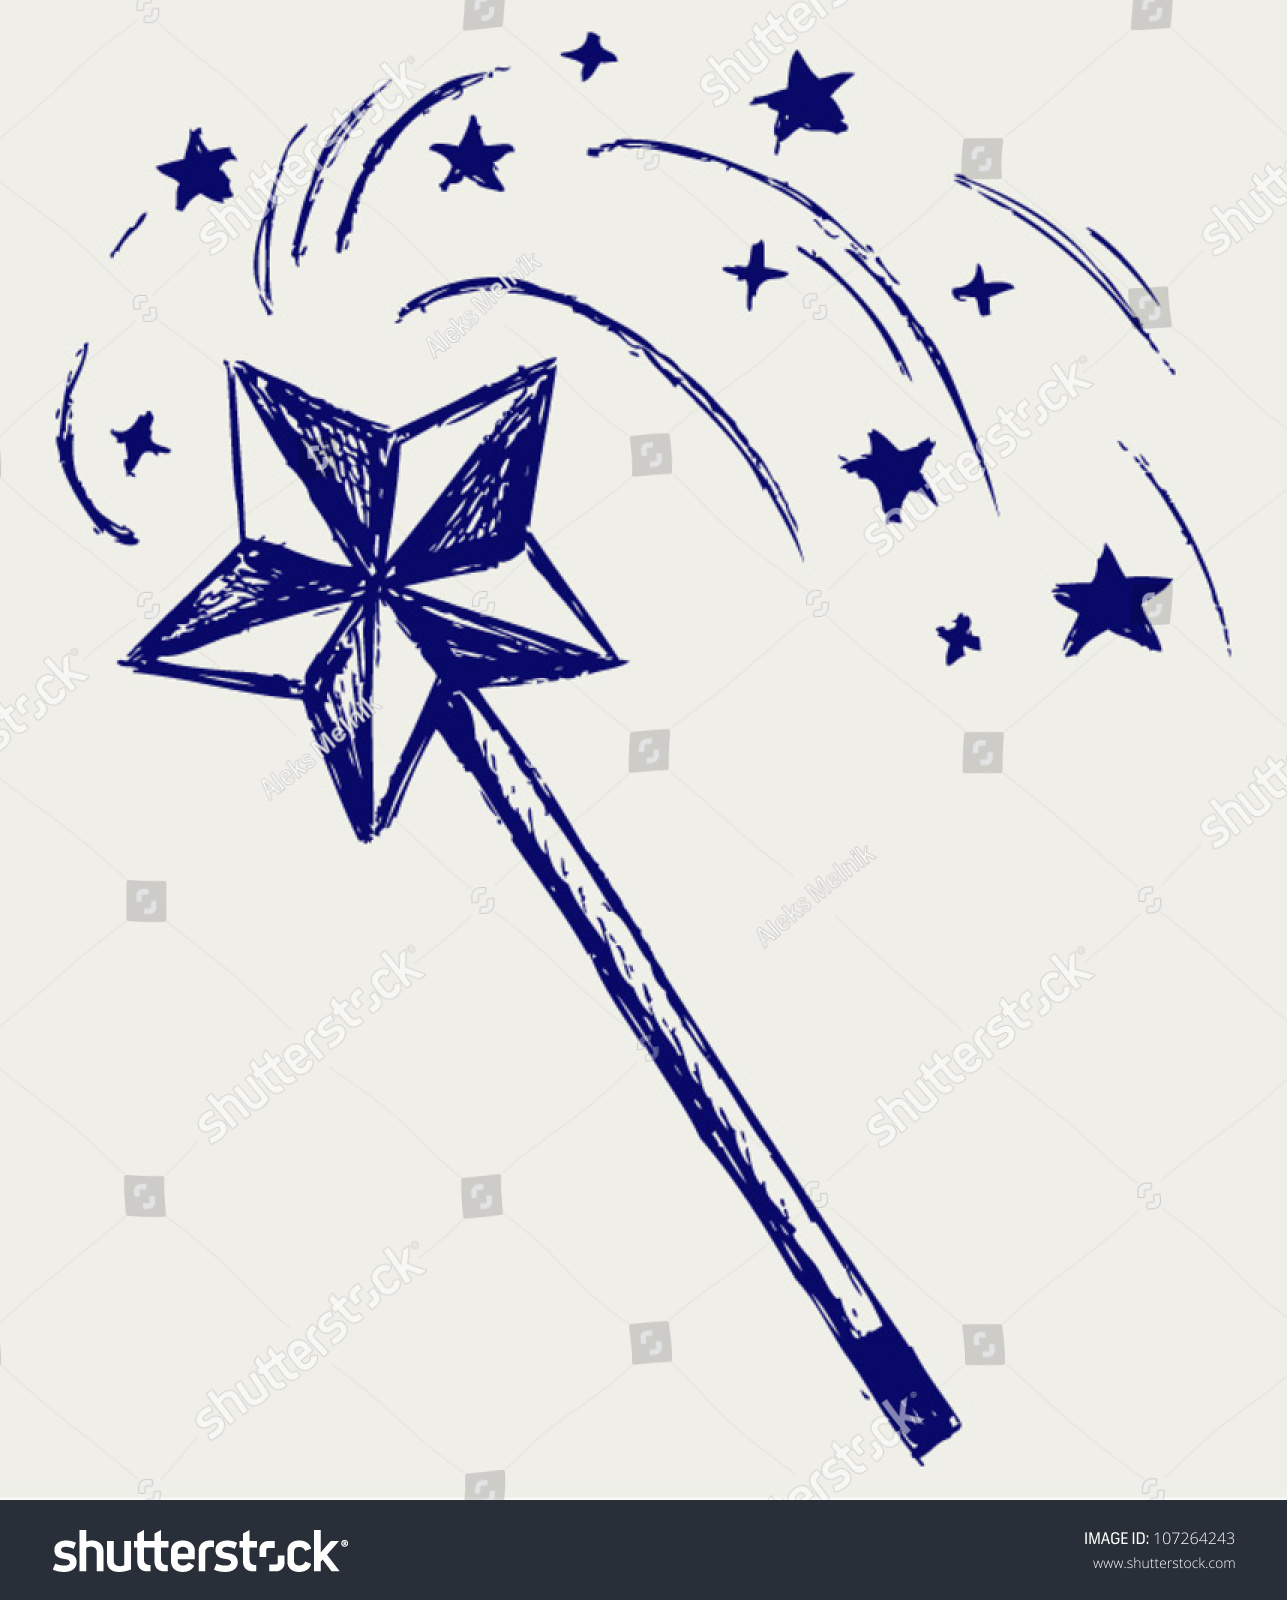 Magic Wand. Sketch Stock Vector Illustration 107264243 : Shutterstock